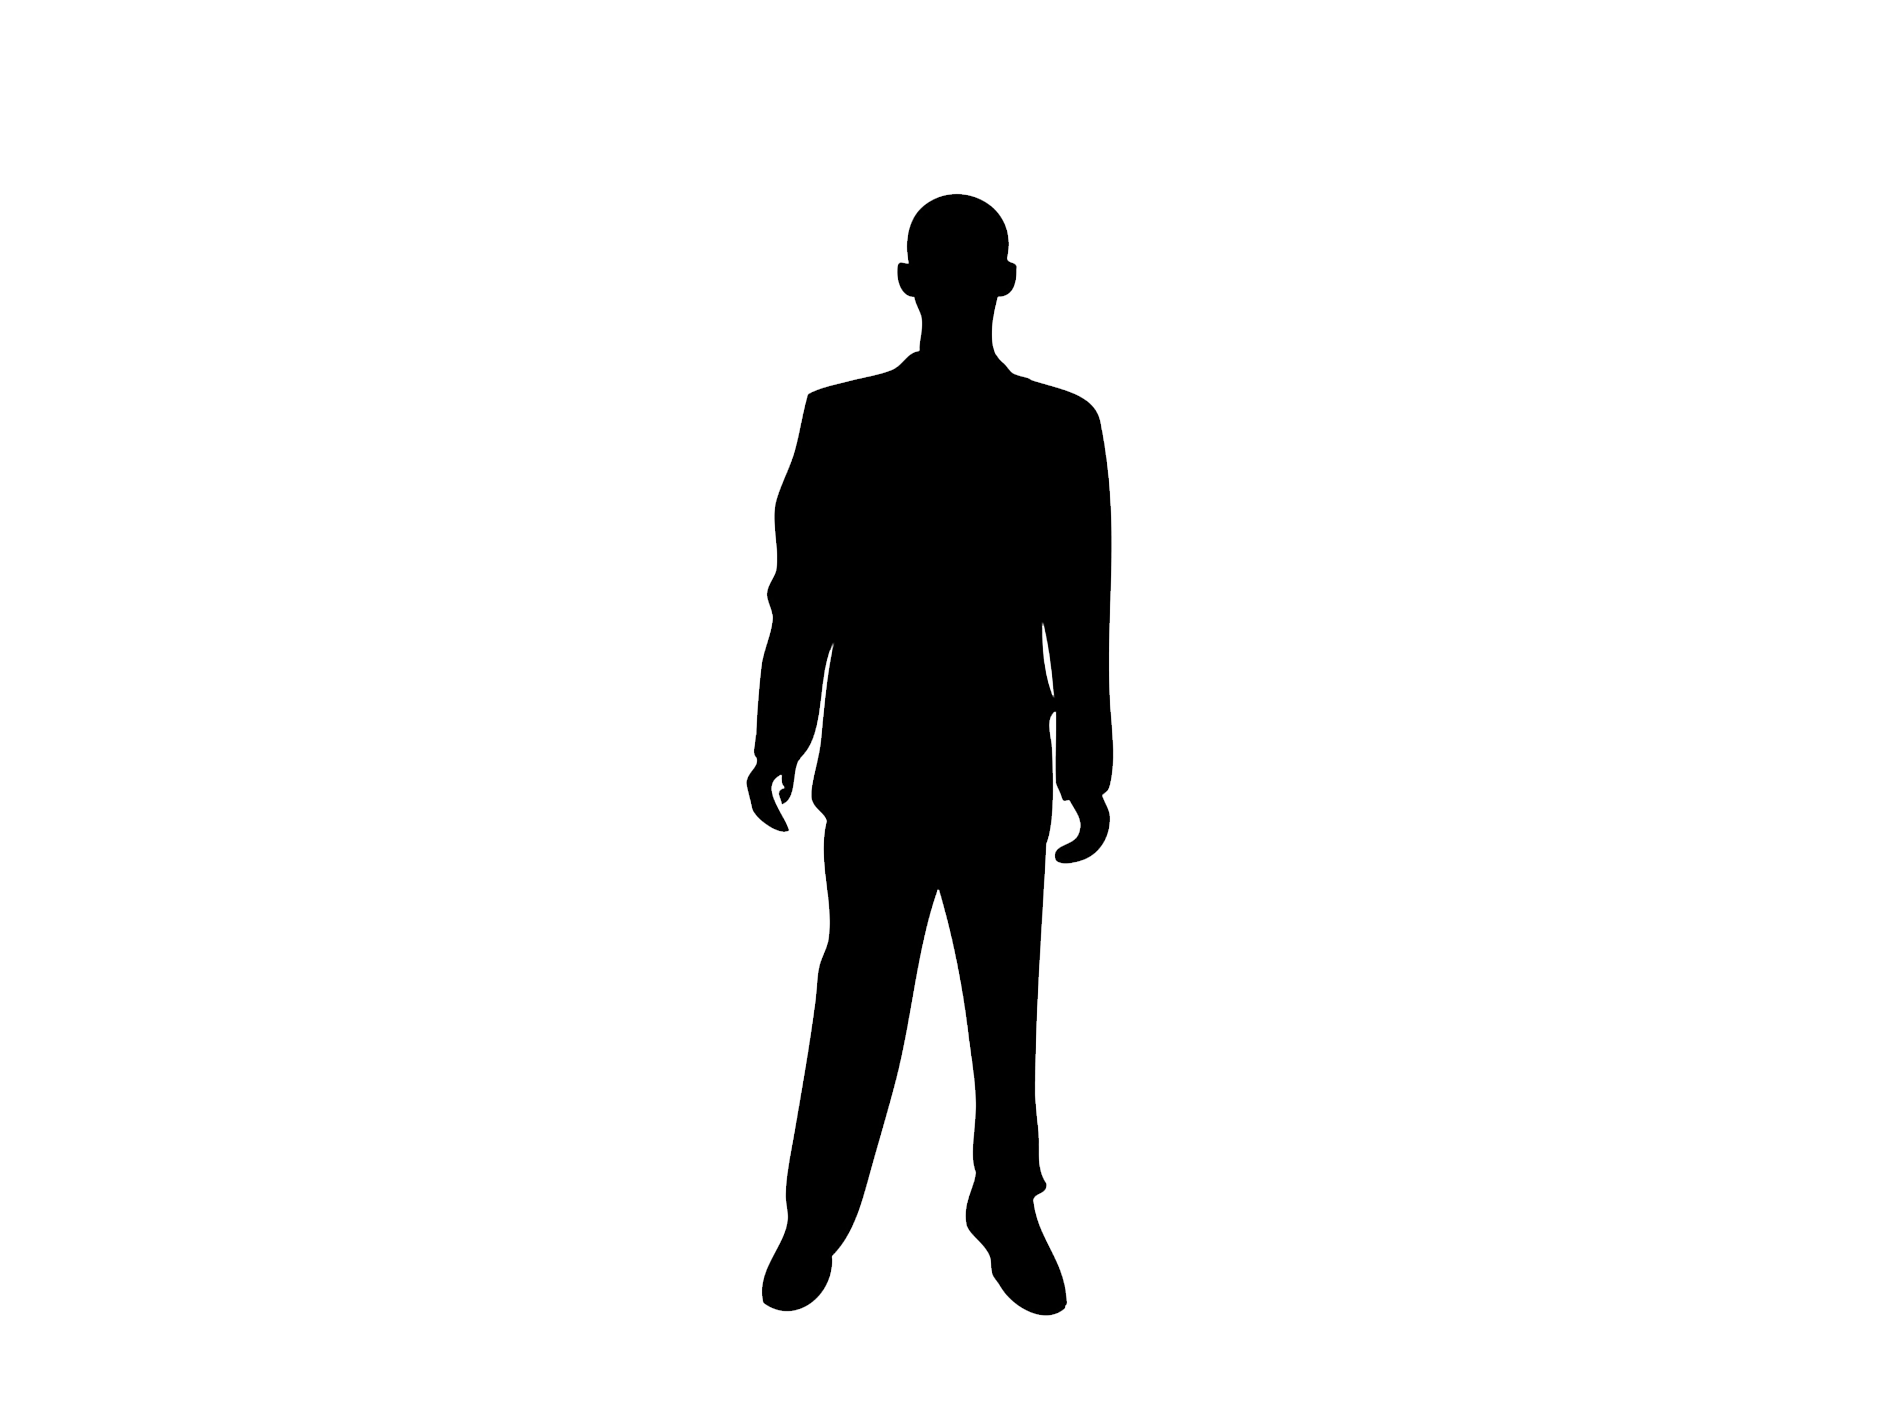 Silhouette Person Royalty.